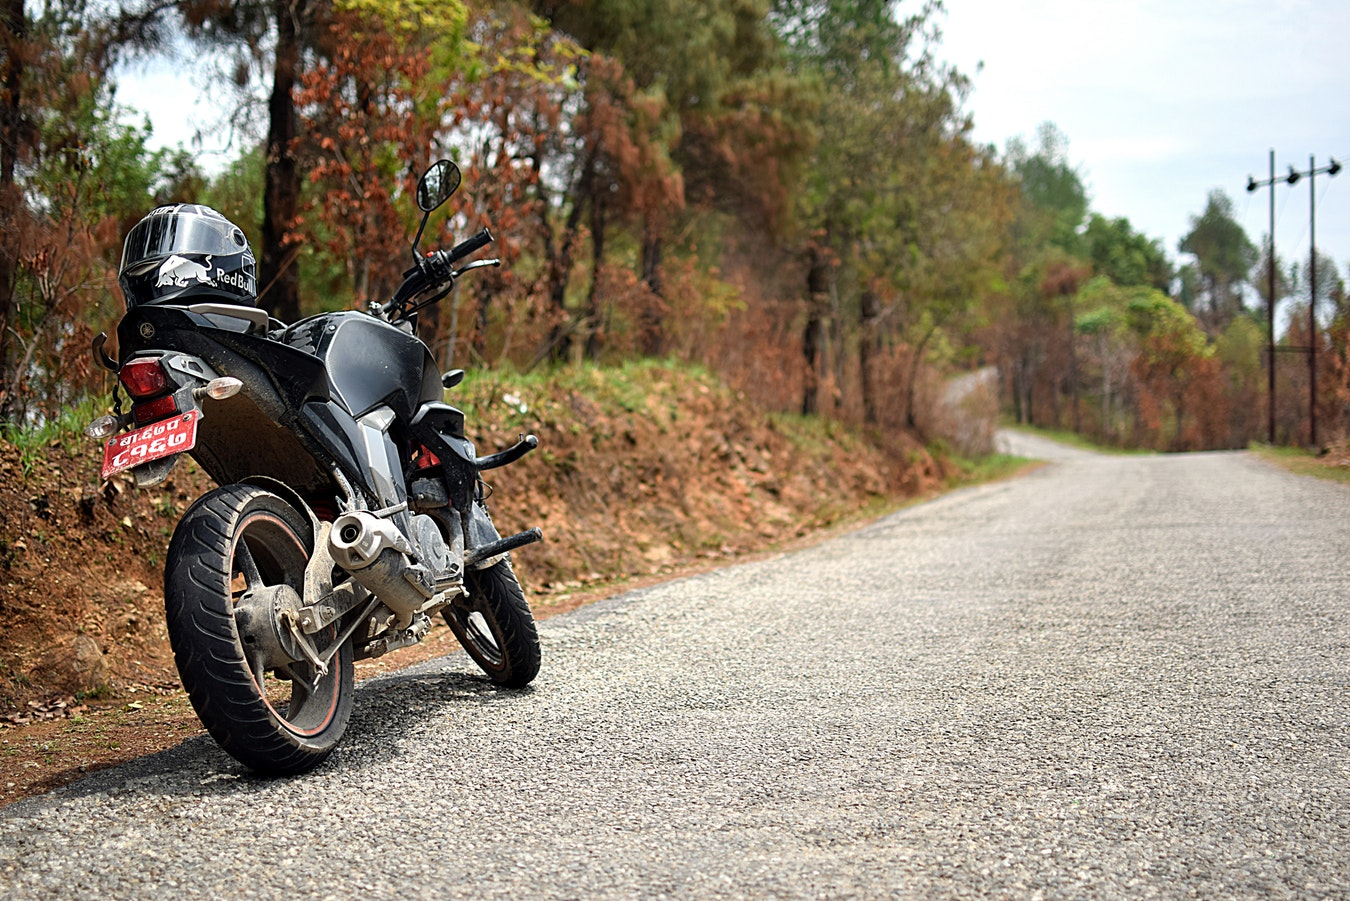 Tips for Motorcyclists to Avoid Accidents